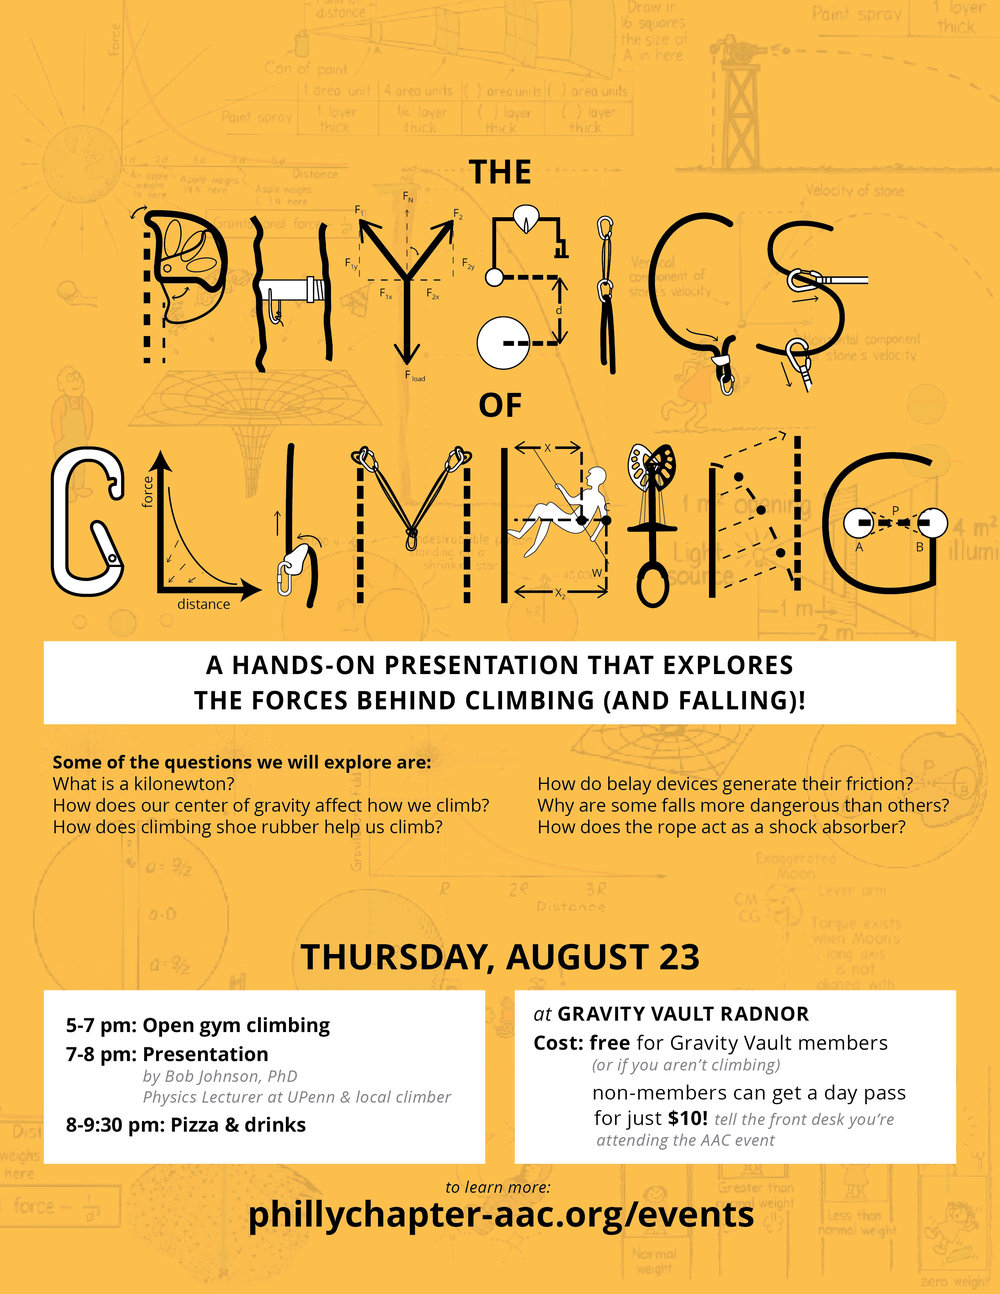 physics of climbing full poster-01.jpg